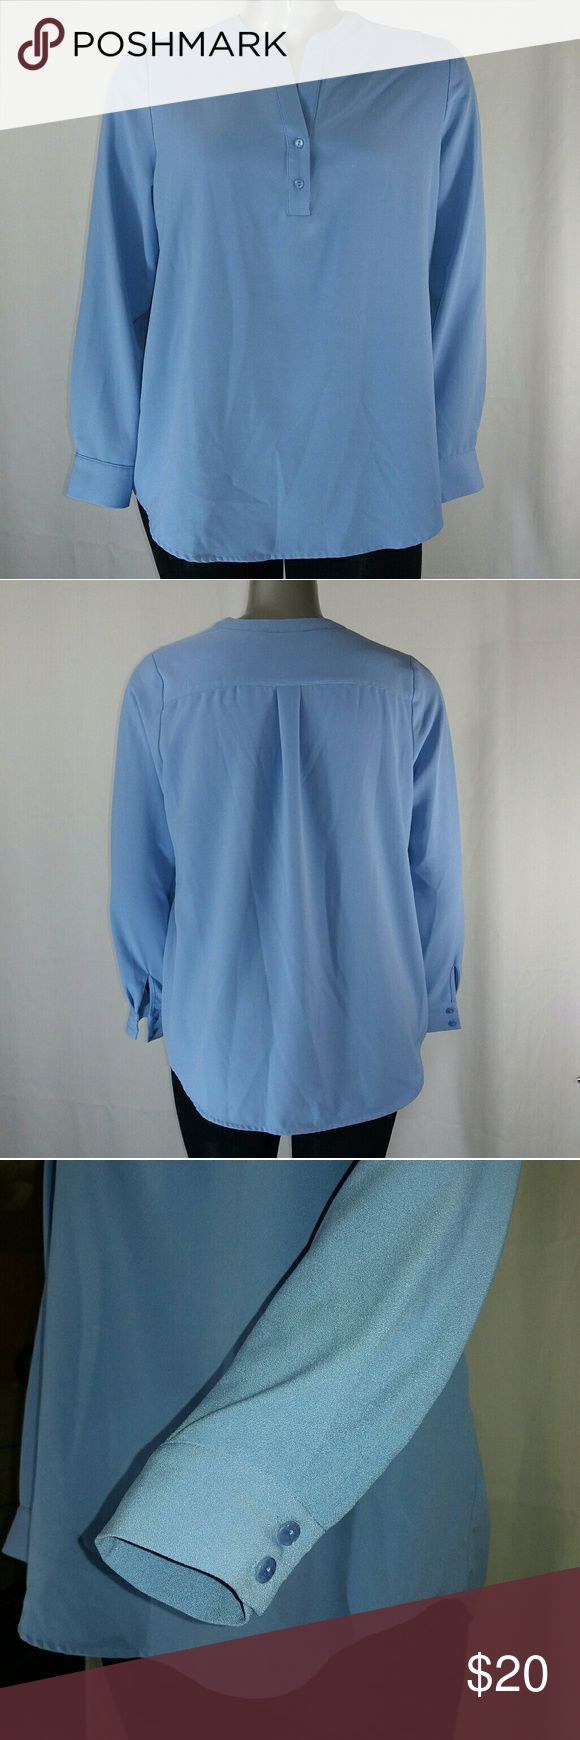 "Susan Graver Blue Long Sleeve V-Neck Blouse, 1 Medium weight, sky blue, long-sleeve, partial button front, v-neck blouse.   Excellent condition. Nice piece for work!   92% polyester, 8% spandex.   17"" sleeve, 29"" length, 48"" bust.   Size 14 by Susan Graver. Susan Graver Tops Blouses"